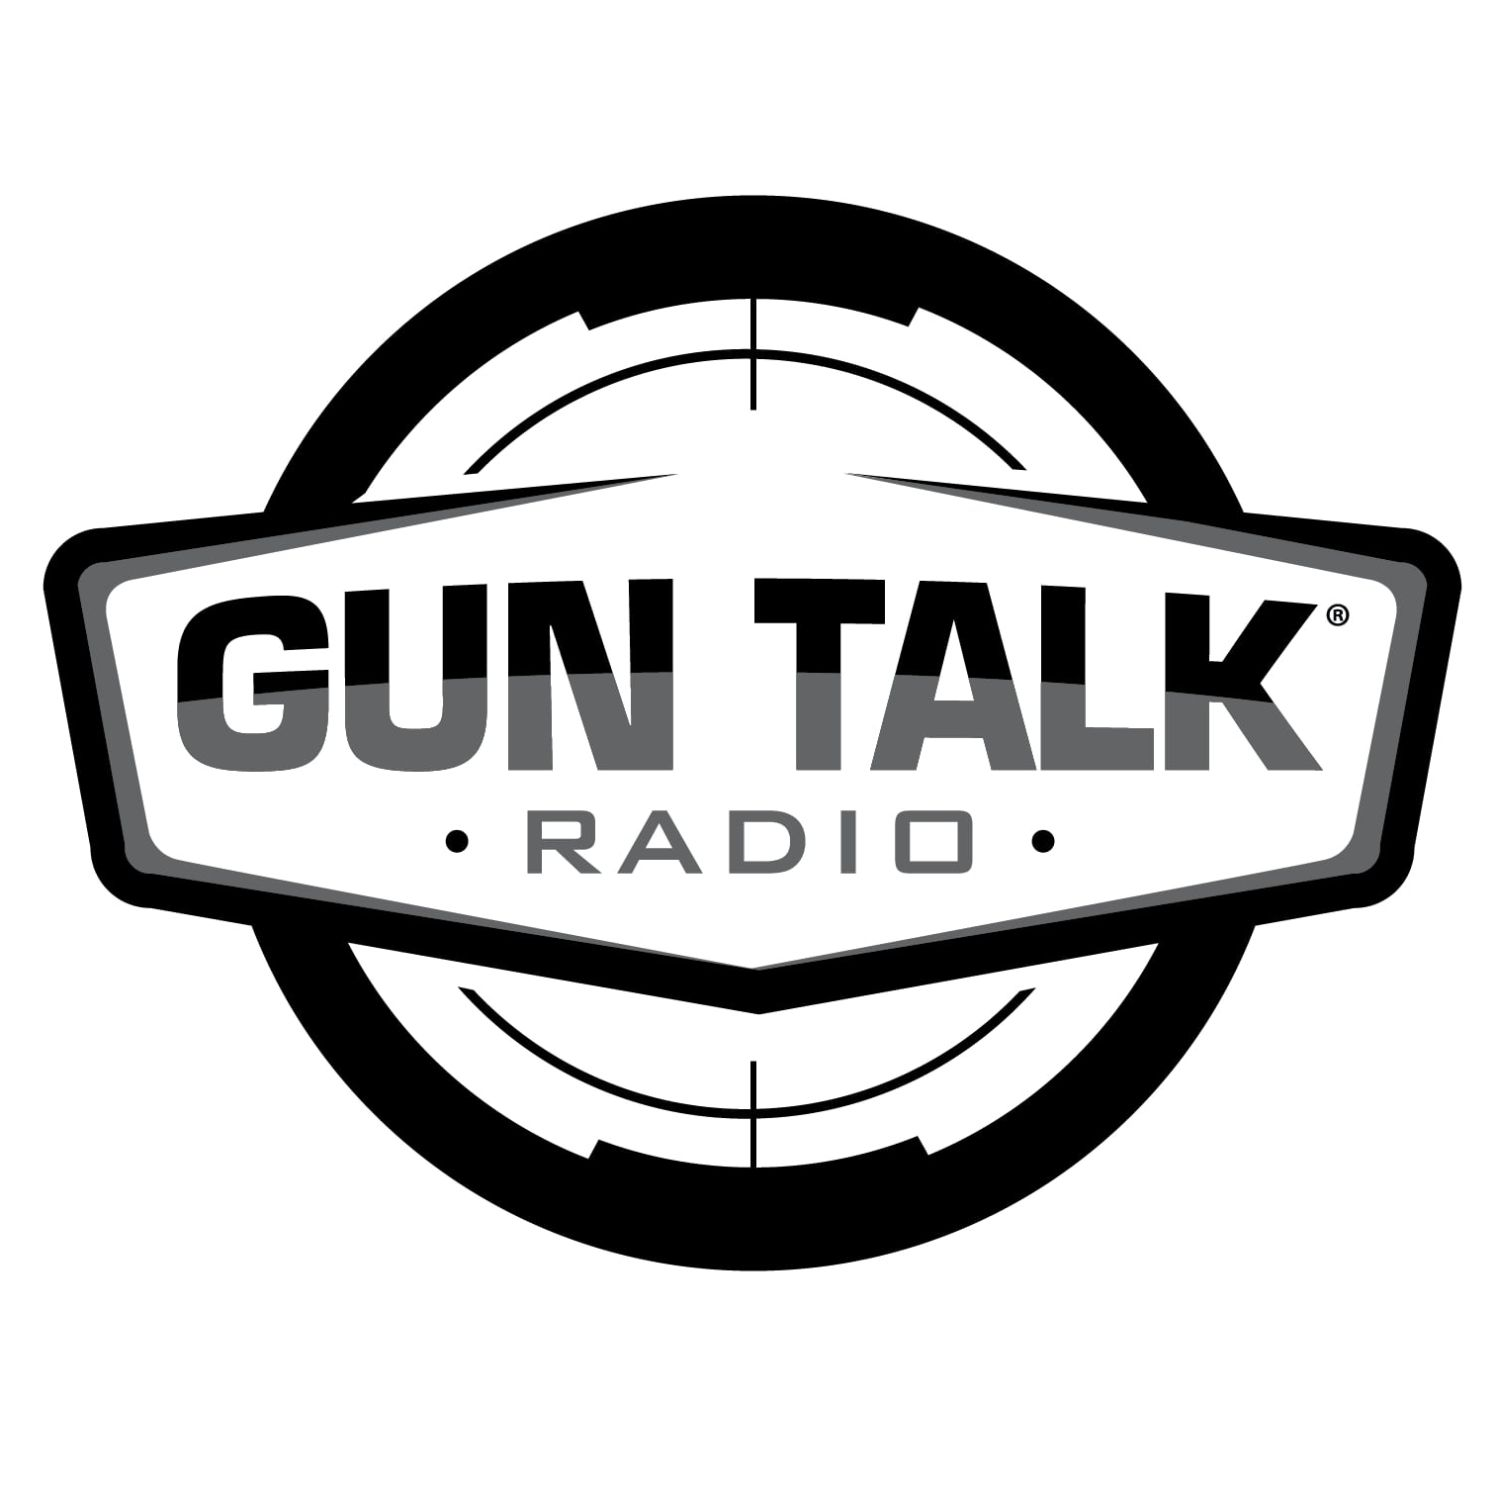 Artwork for Guntalk 2008-10-19 Part B